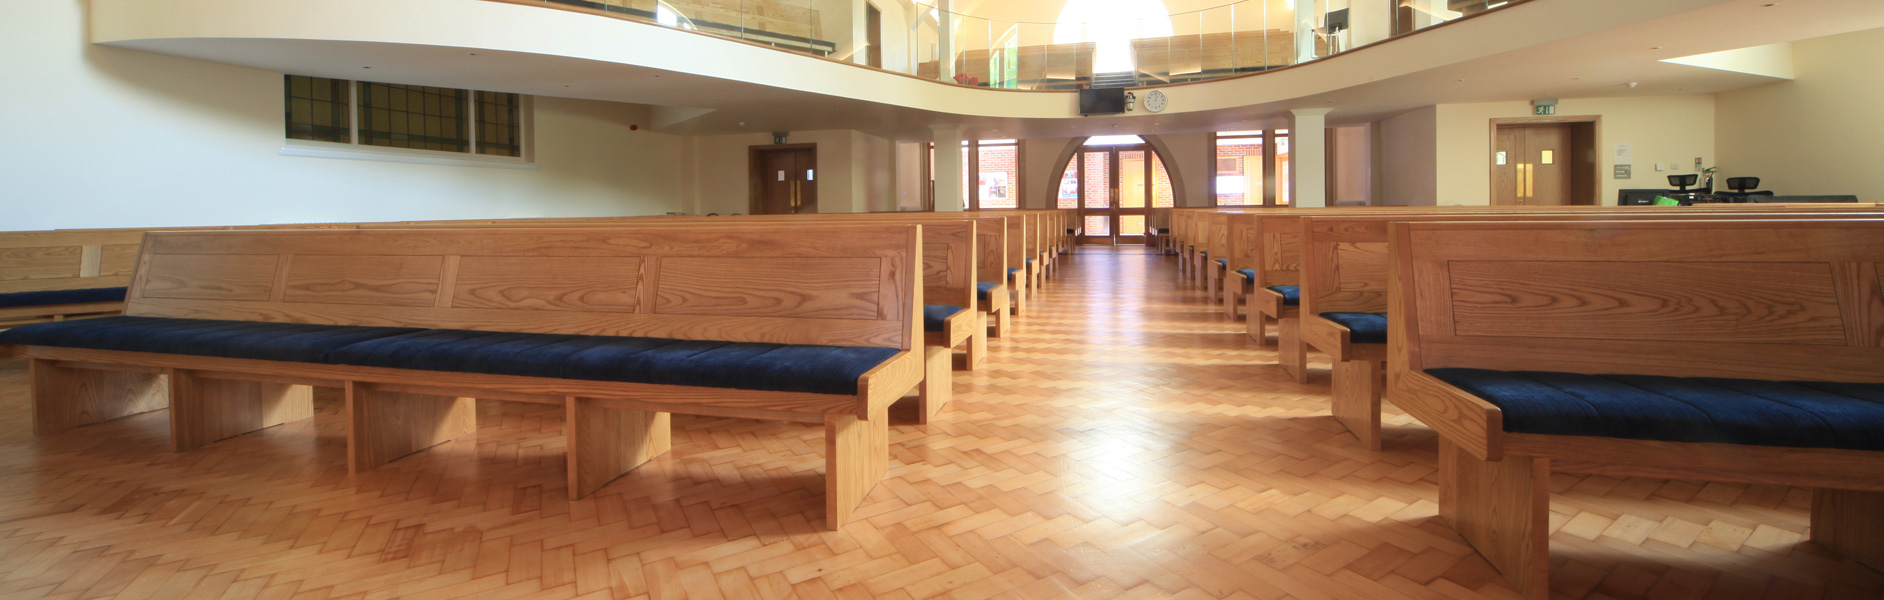 ICS church furniture manufacturers